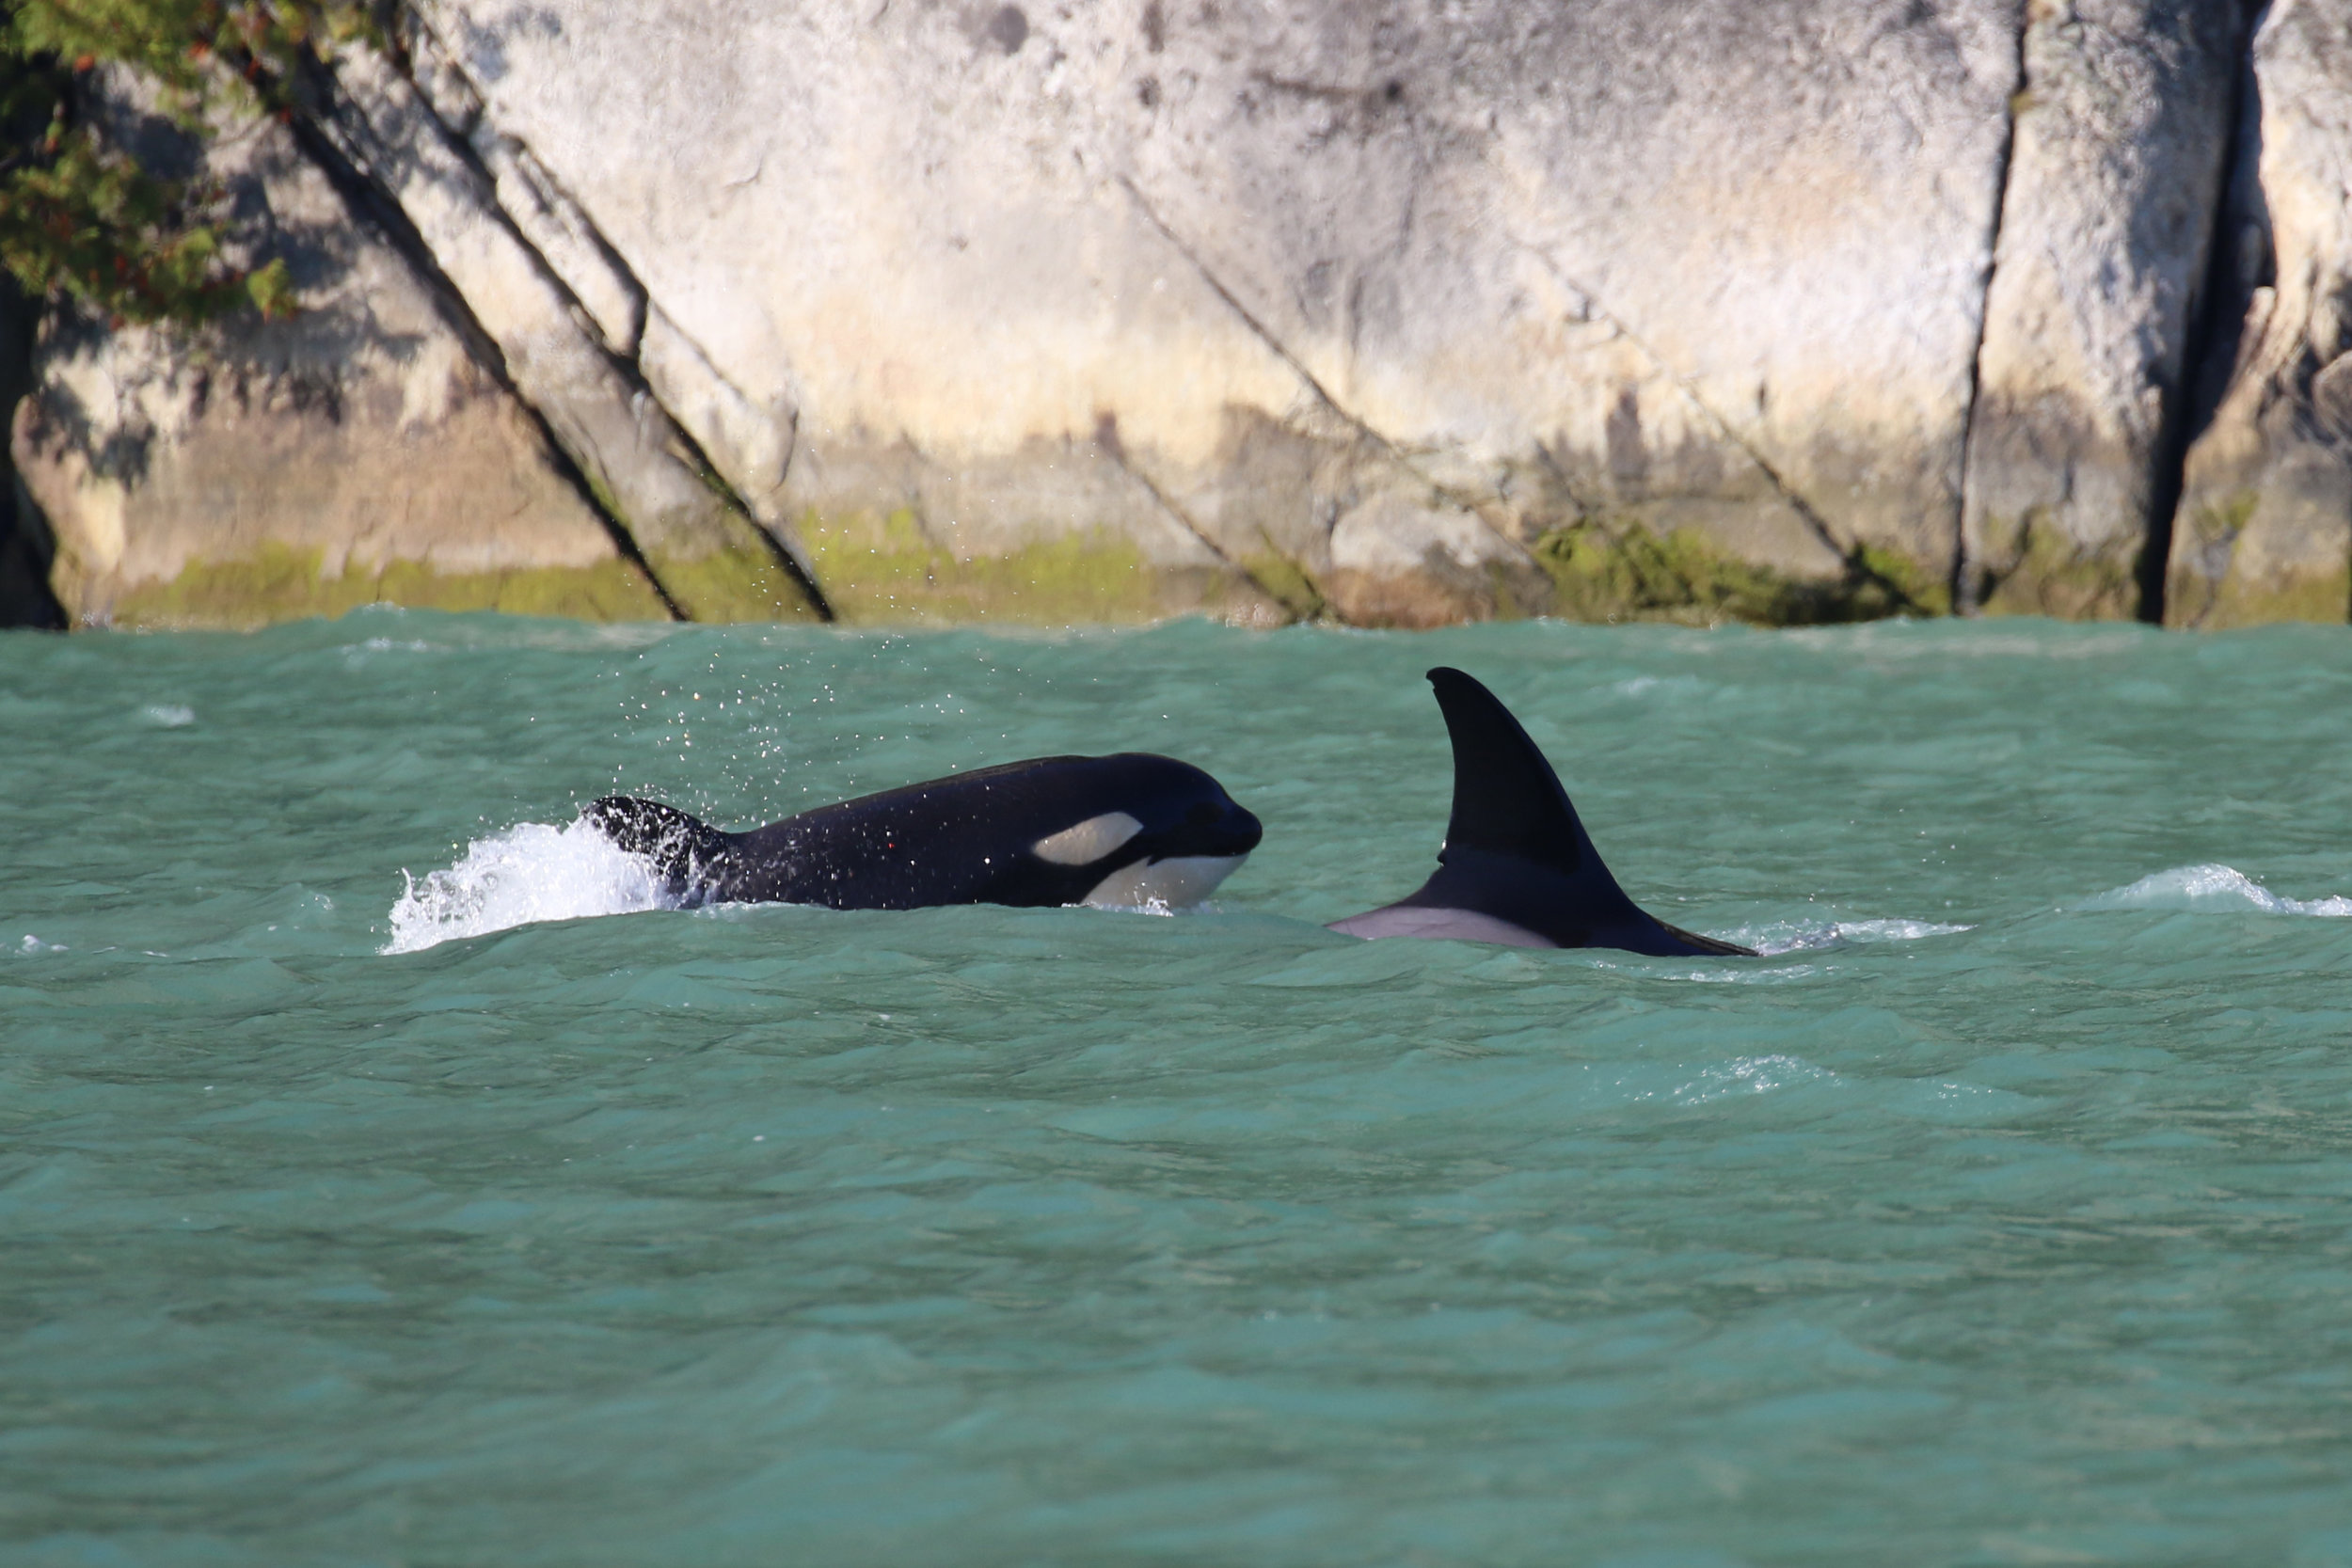 Little T036B3 surfacing with her mom! Photo by Val Watson.